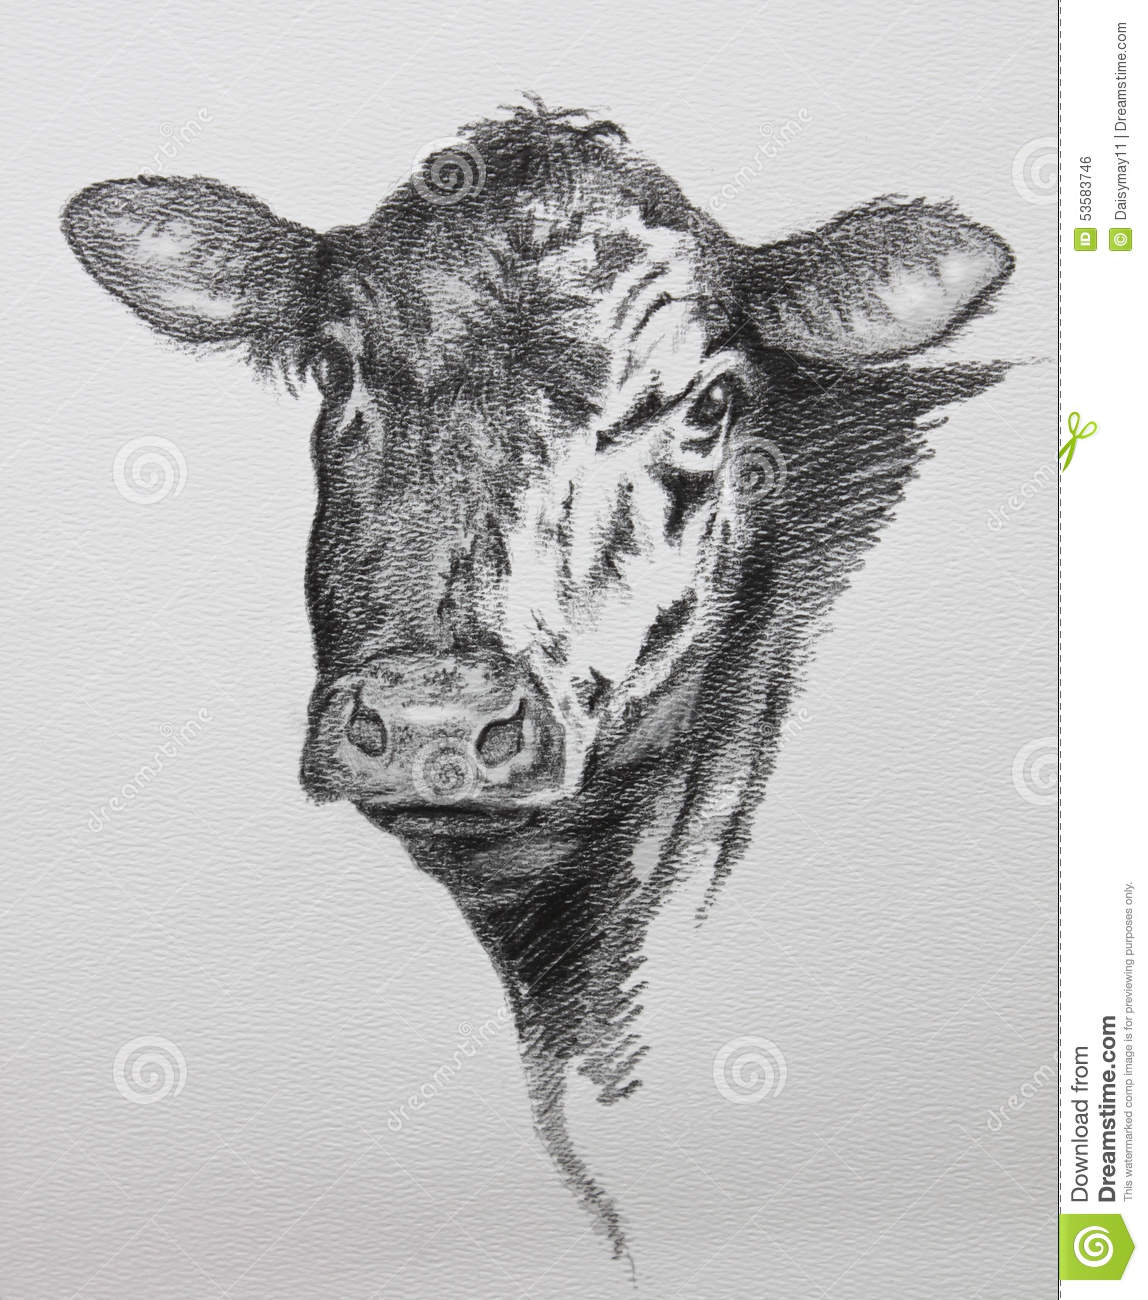 Royalty Free Stock Image: Cow Pencil Drawing. Image: 53583746